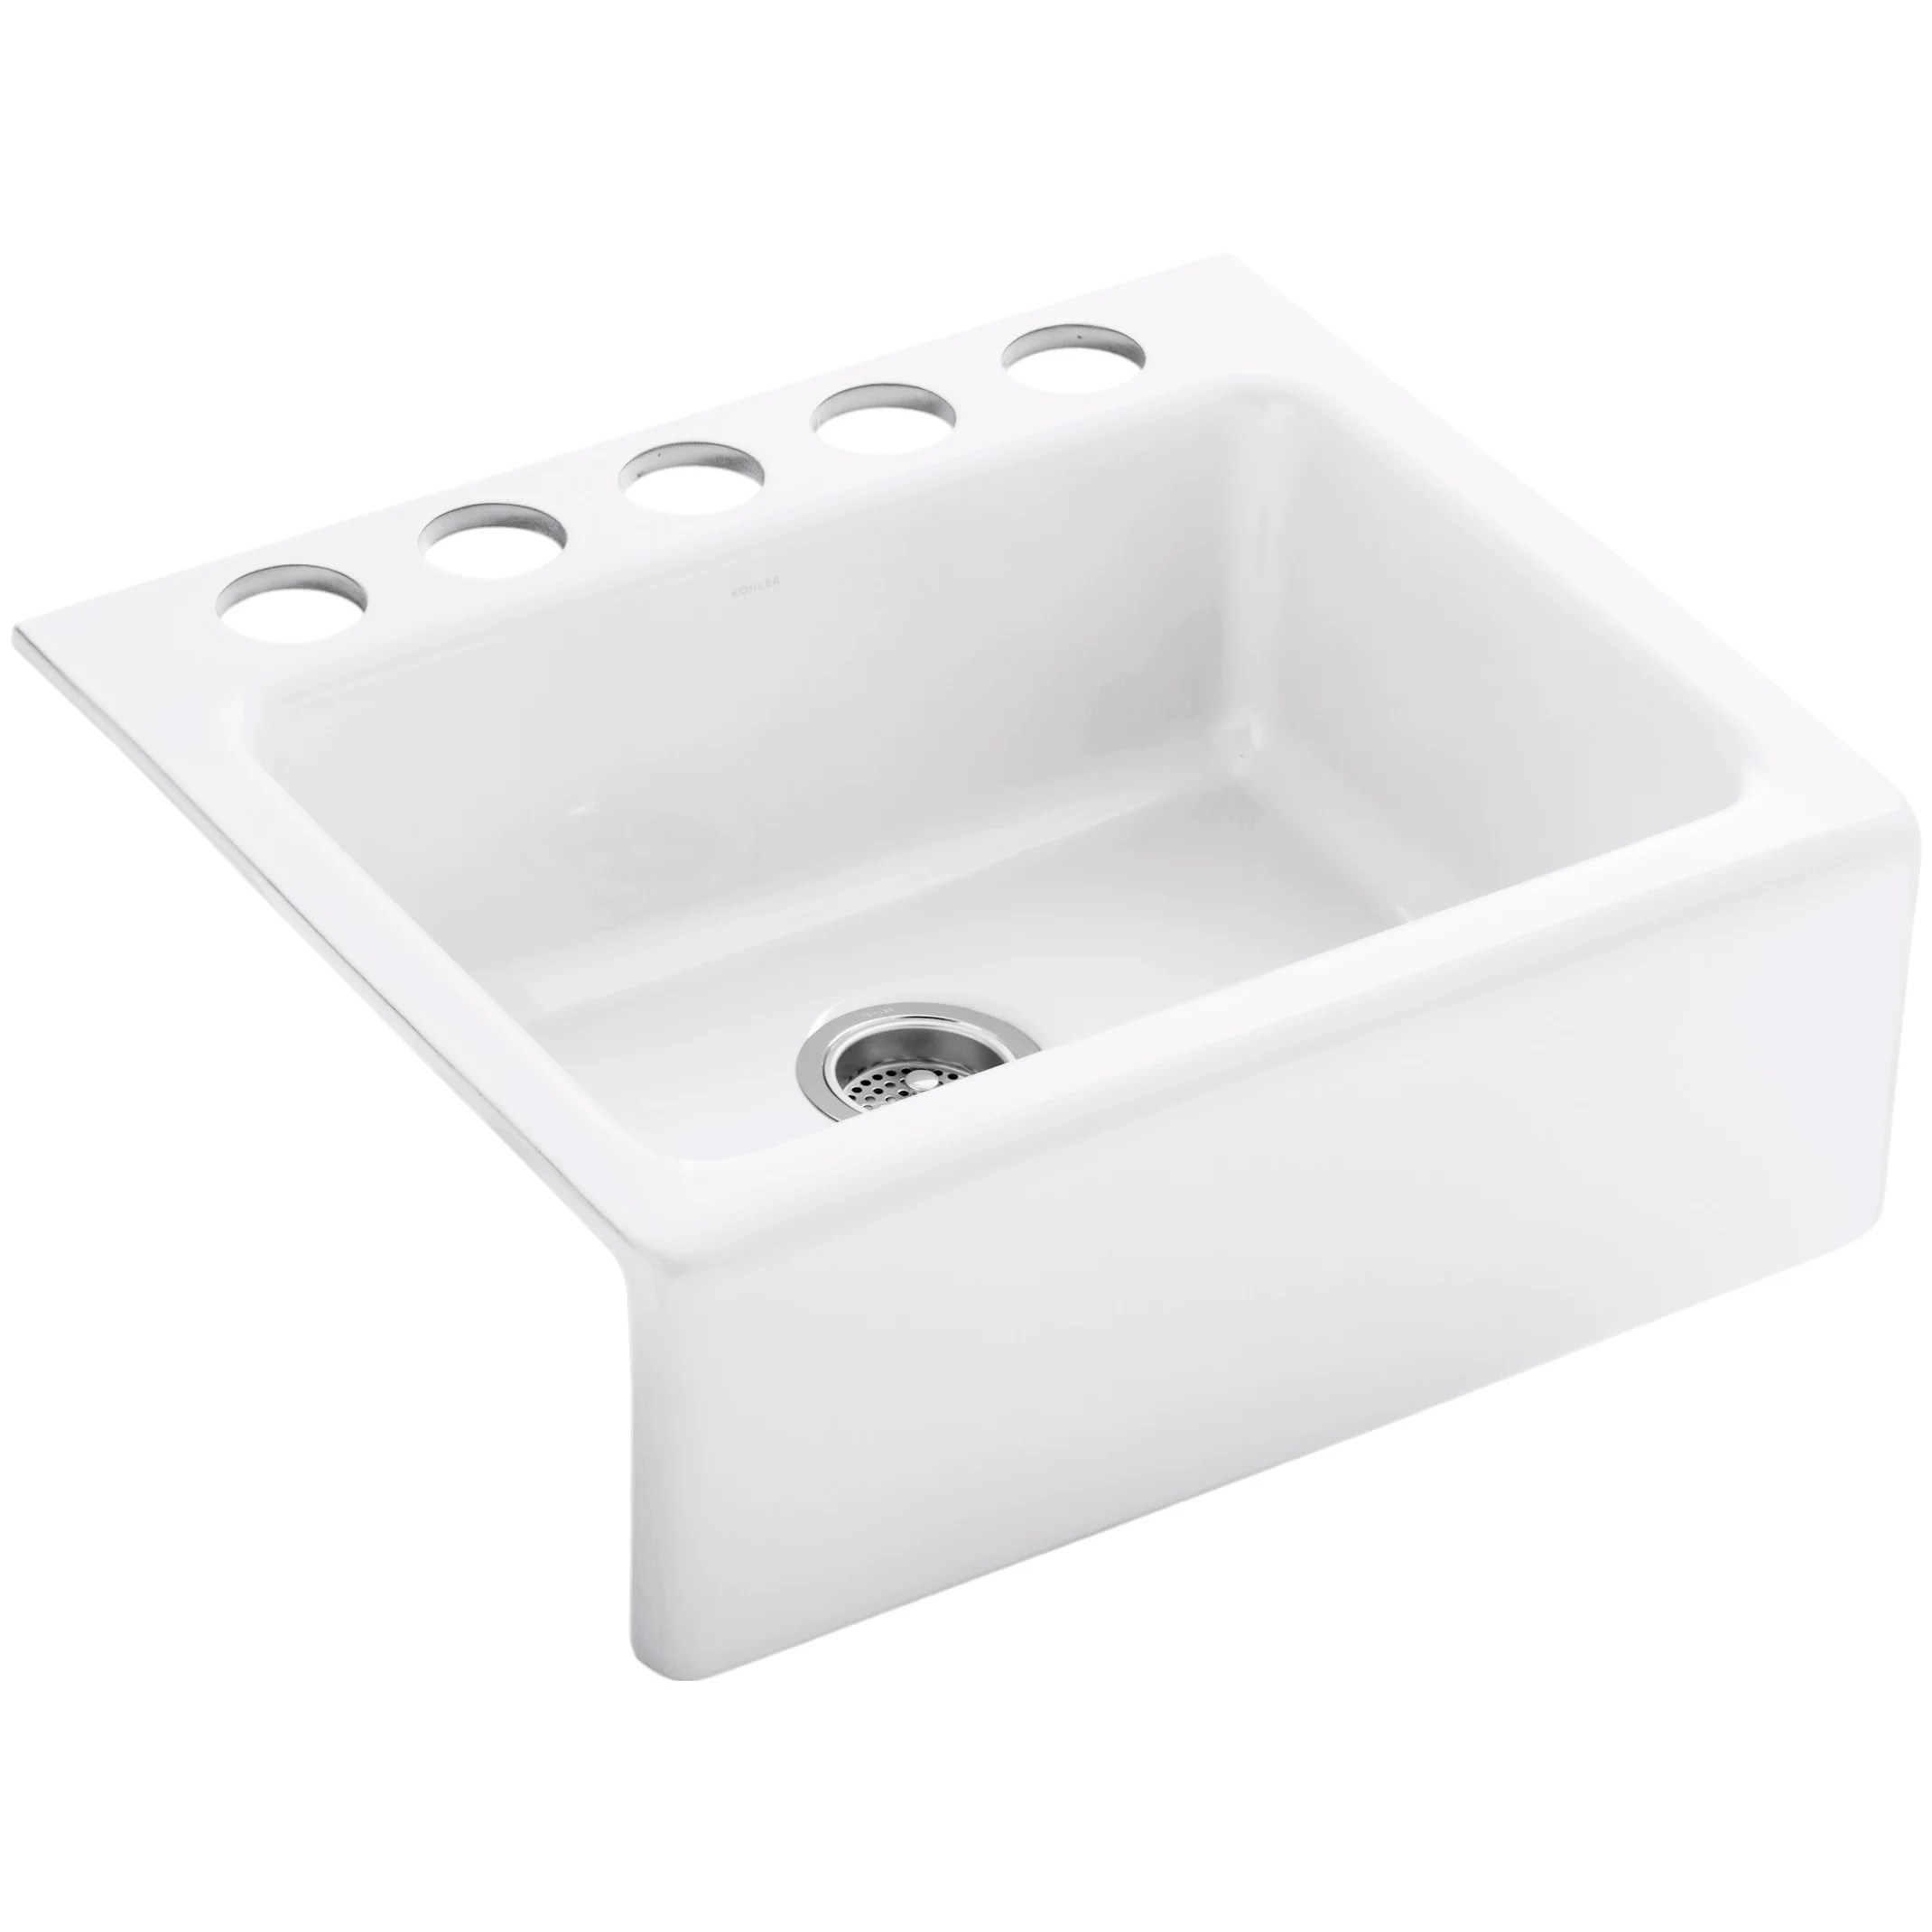 Kohler Alcott 25 x 22 x 8 5 8 Under Mount Single Bowl Kitchen Sink with Apron Front and 5 Oversize Faucet Holes